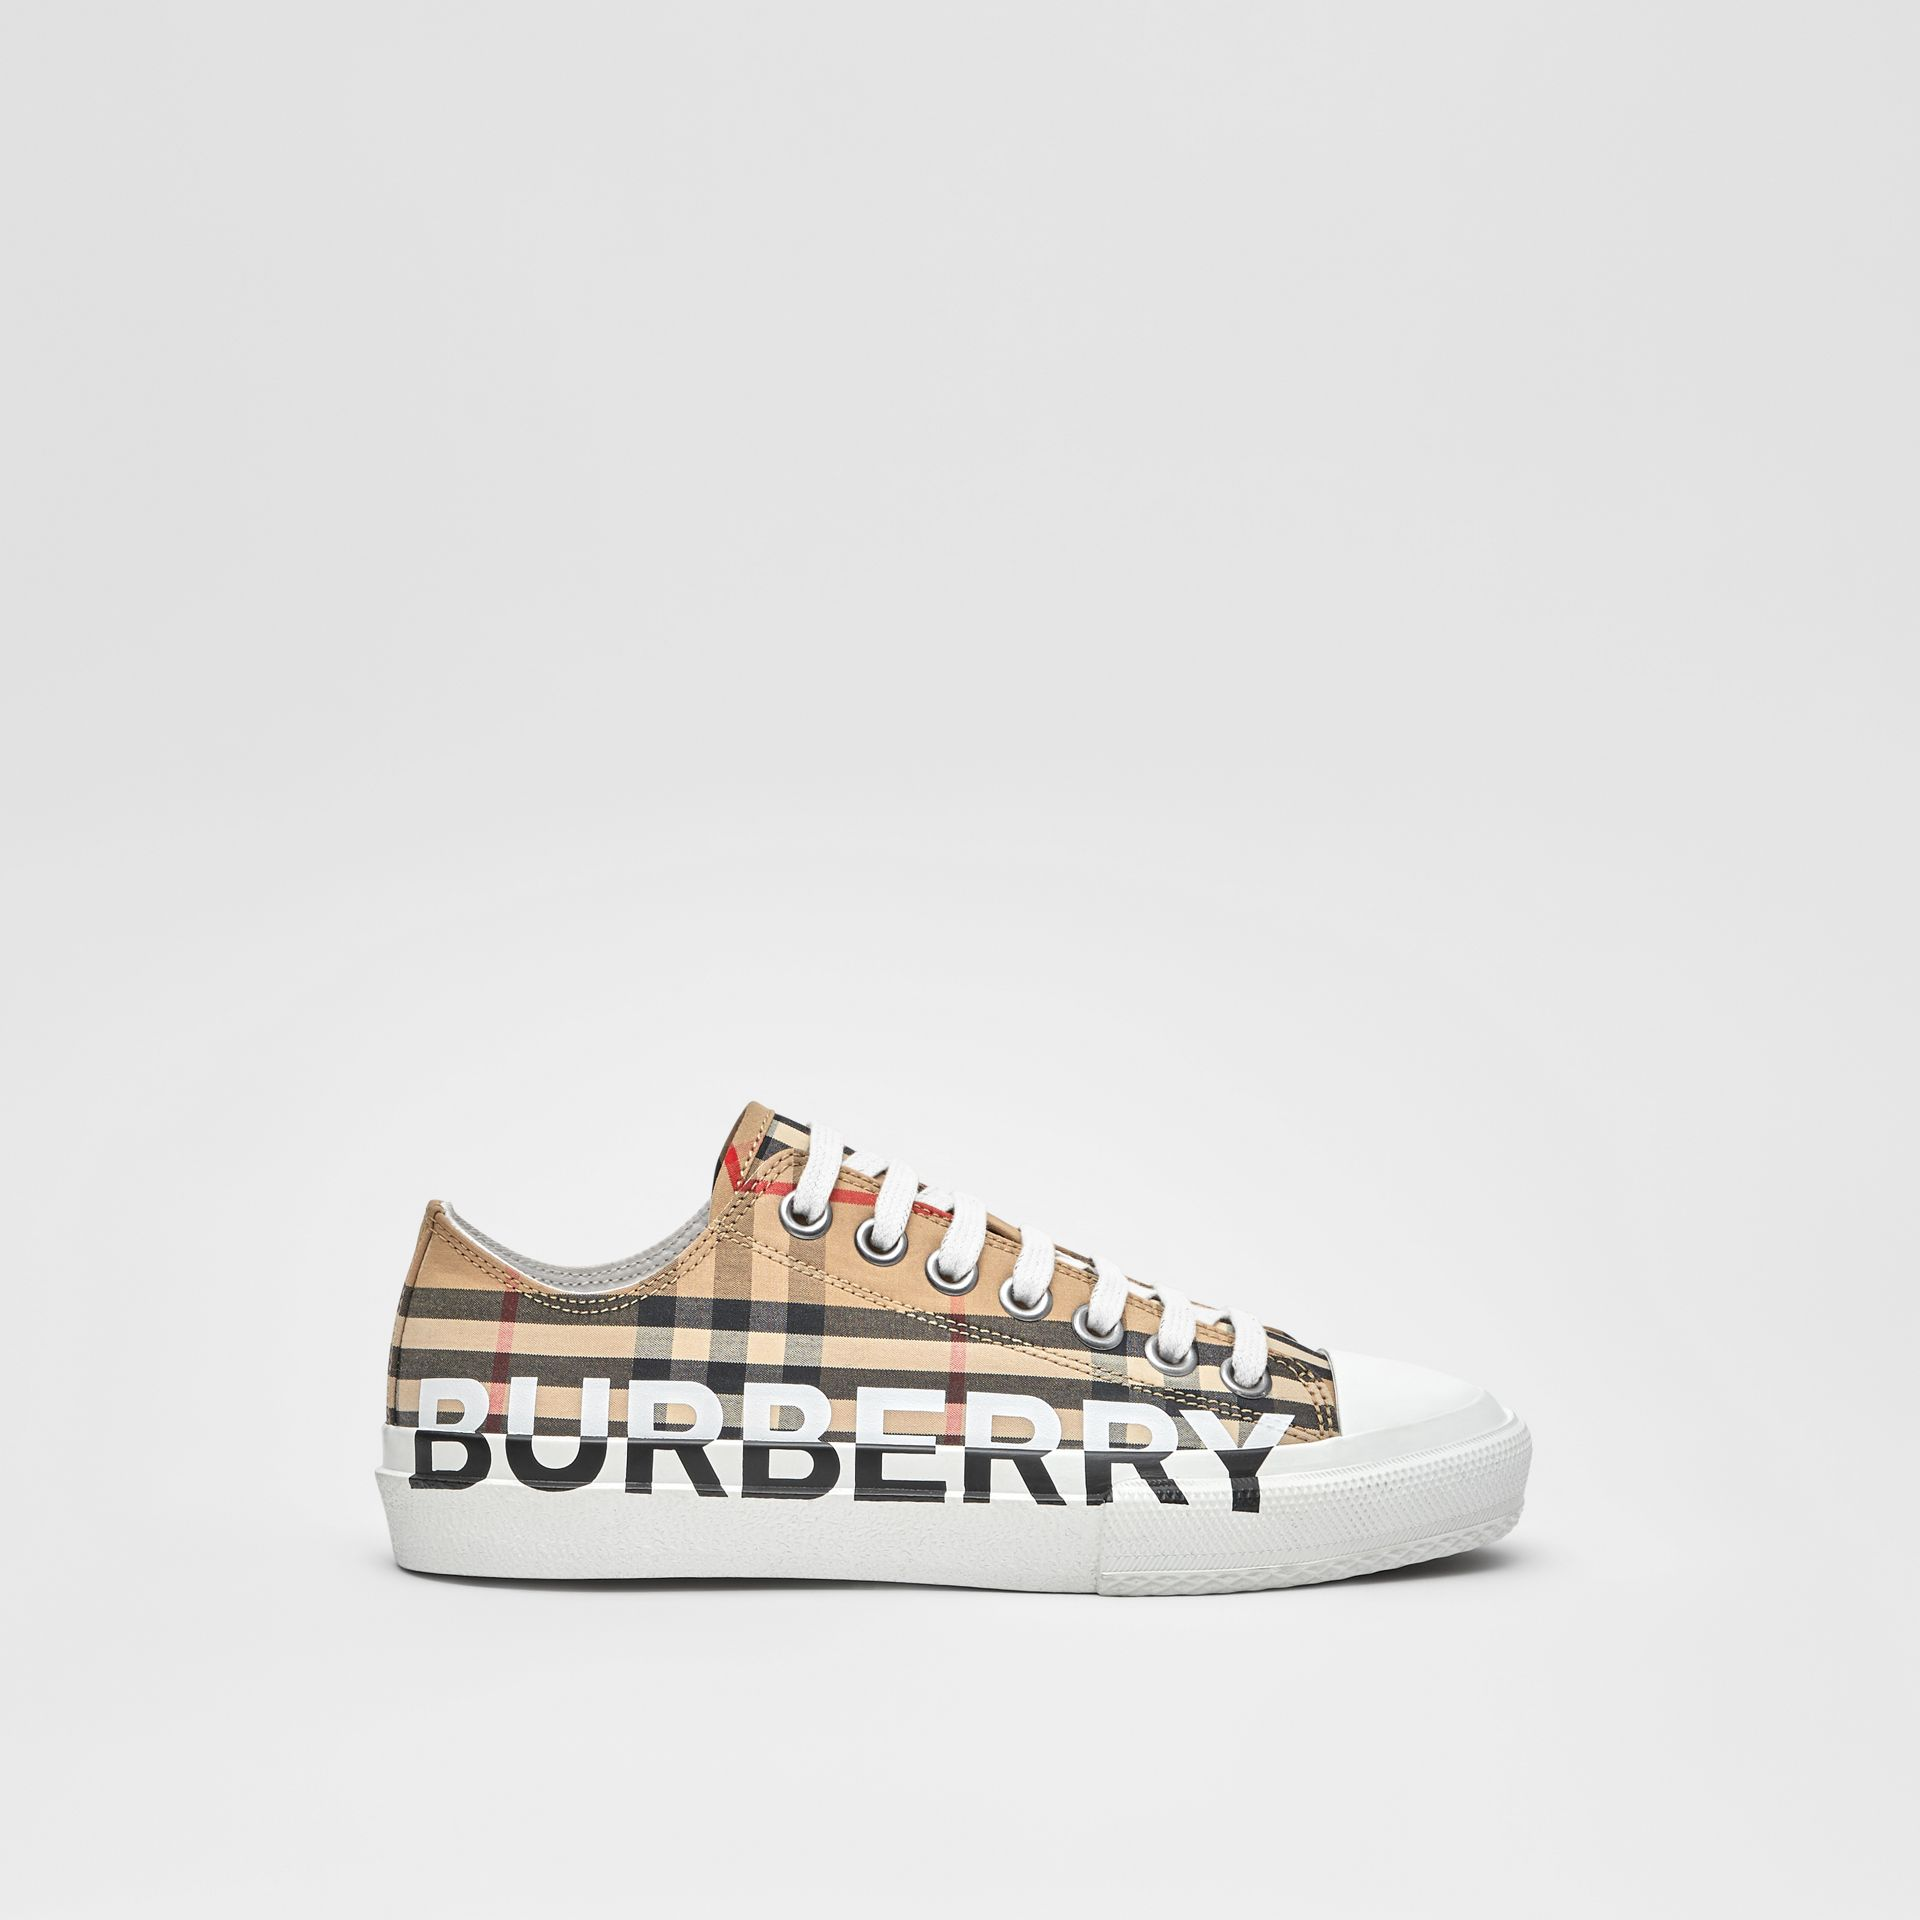 Logo Print Vintage Check Cotton Sneakers in Archive Beige - Women | Burberry - gallery image 4